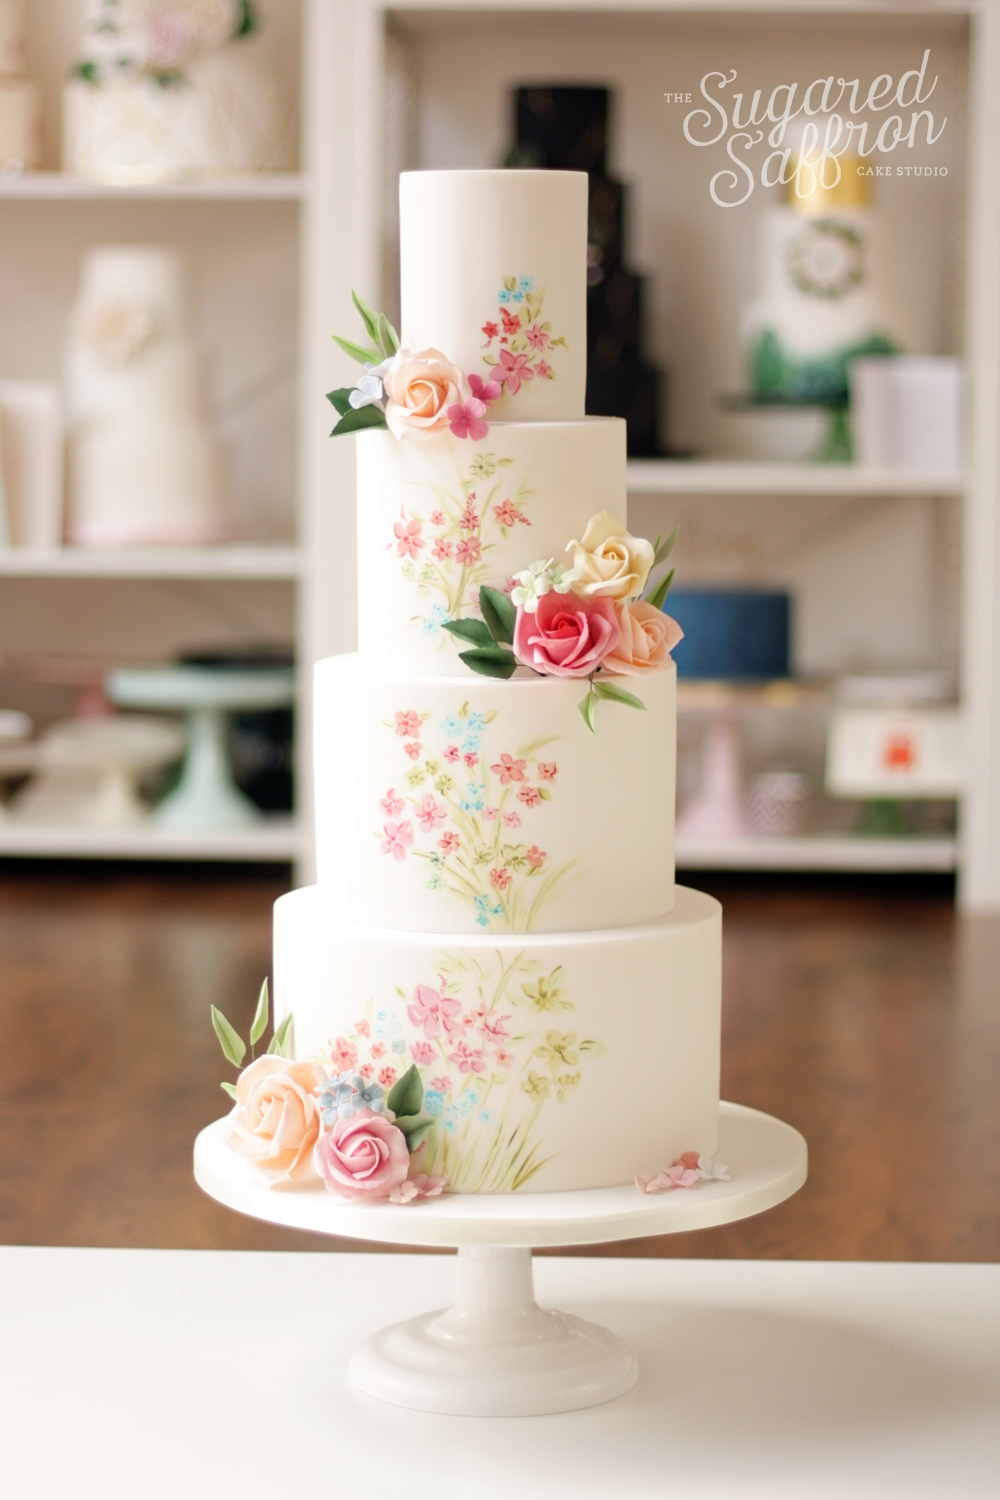 hand painted spring floral design wedding cake with sugar roses